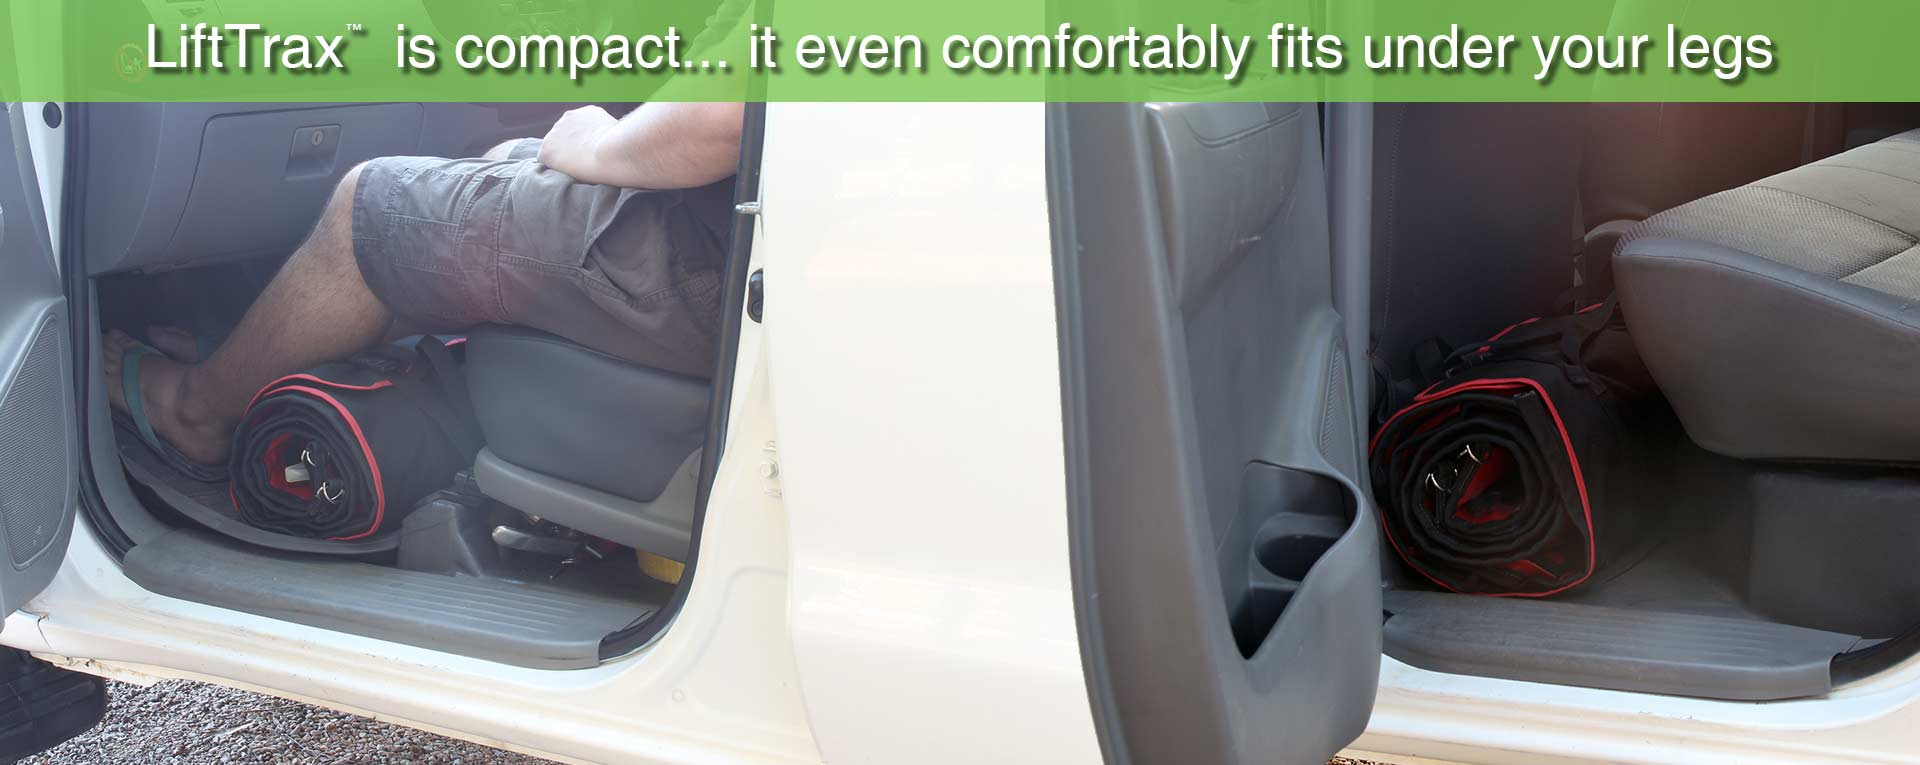 LiftTrax™ fits under your legs